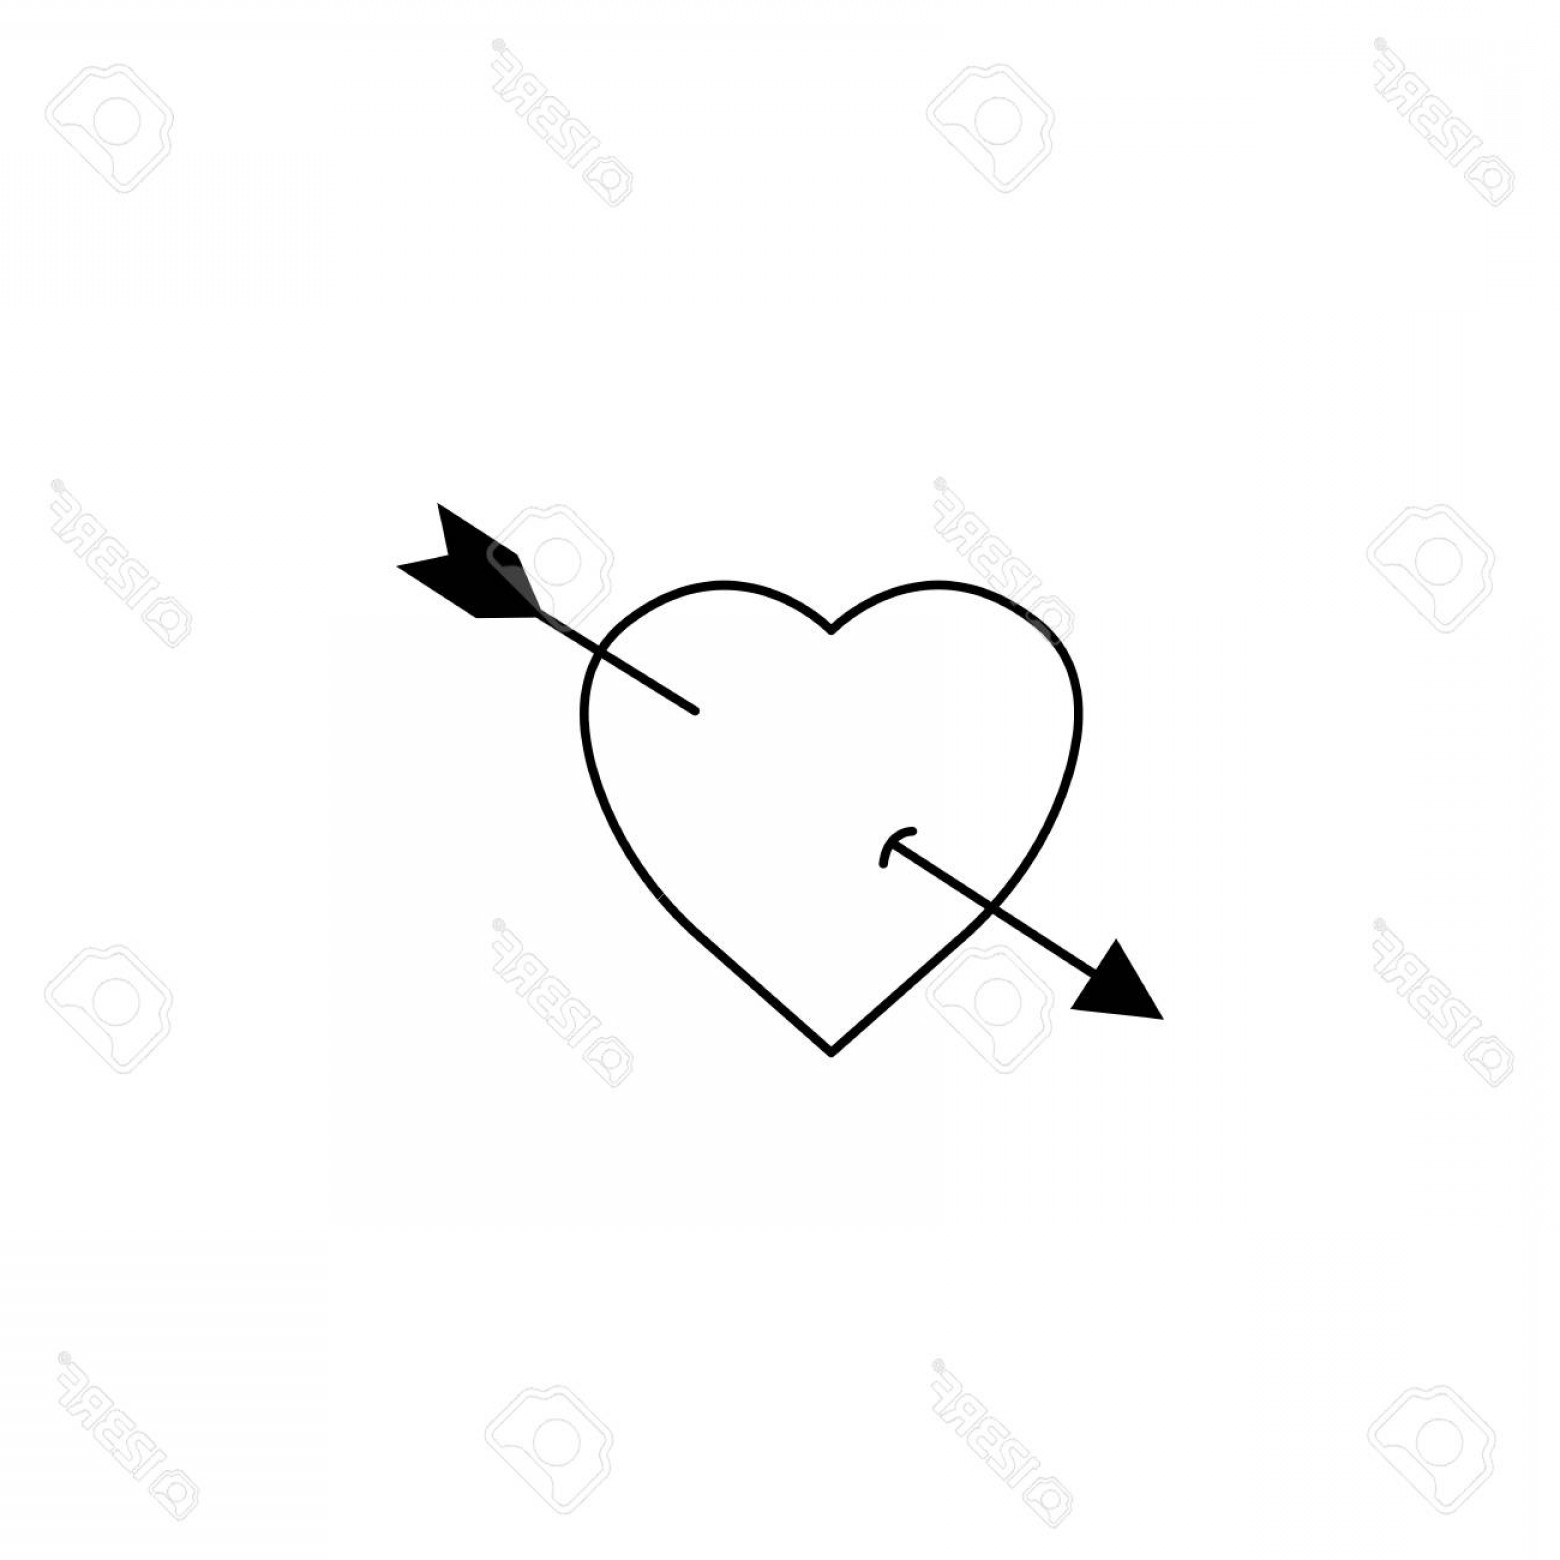 Solid Heart Vector Drawing: Photostock Vector Heart With Arrow Solid Icon Love Sign Valentine S Day Love Concept Vector Graphics A Filled Pattern